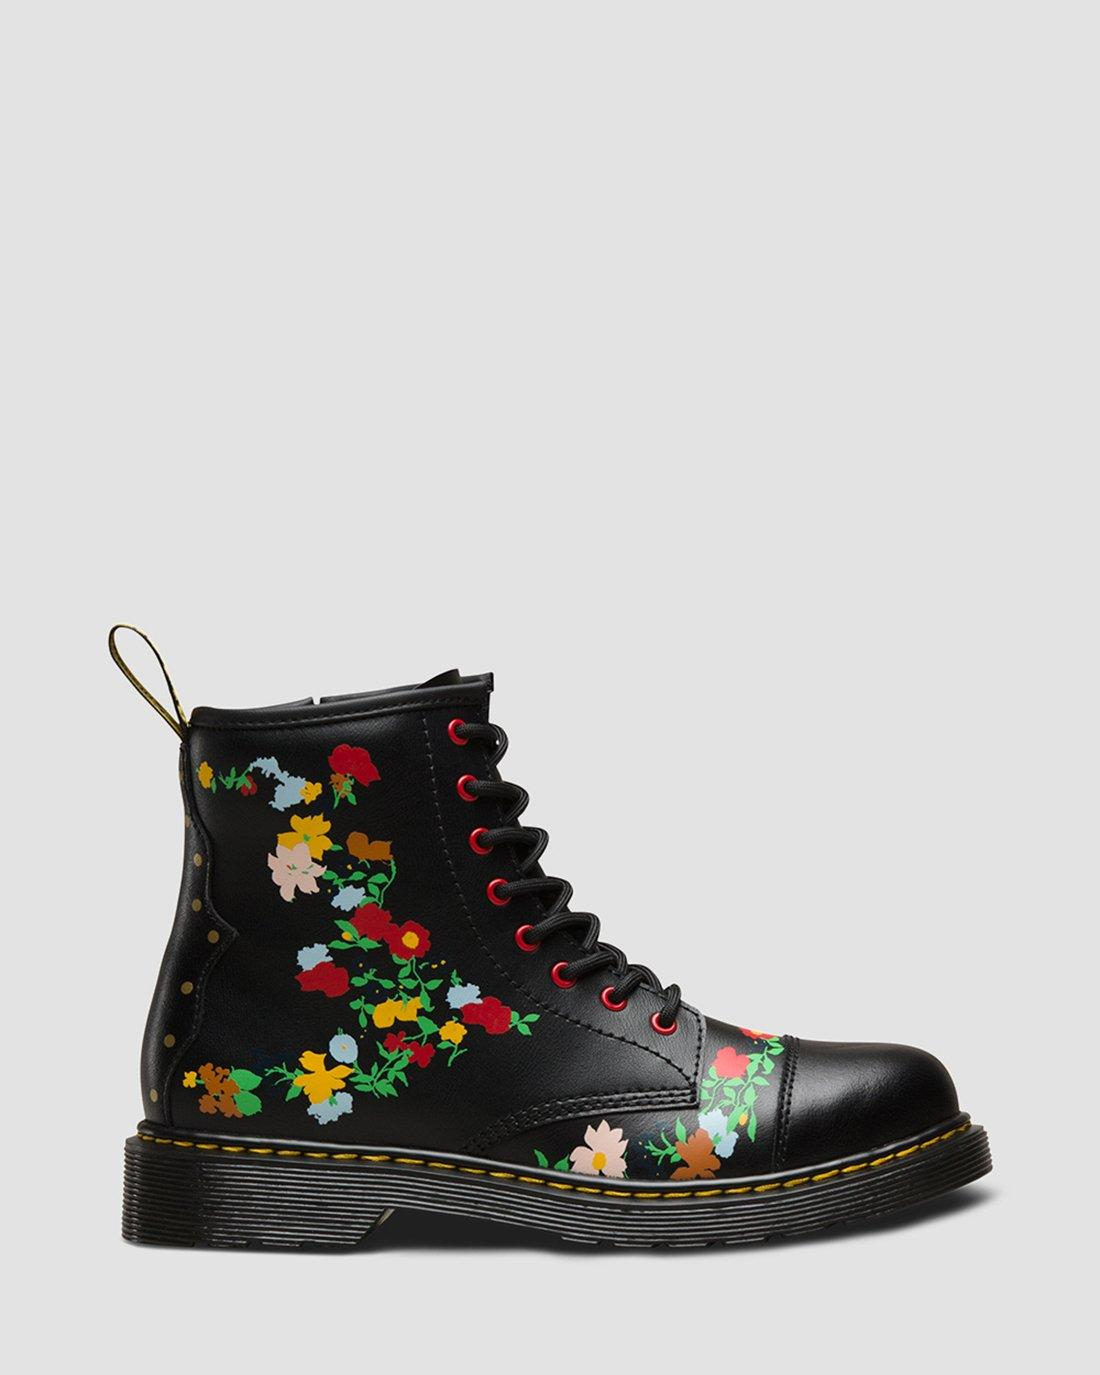 DR MARTENS YOUTH 1460 POOCH FLOWER